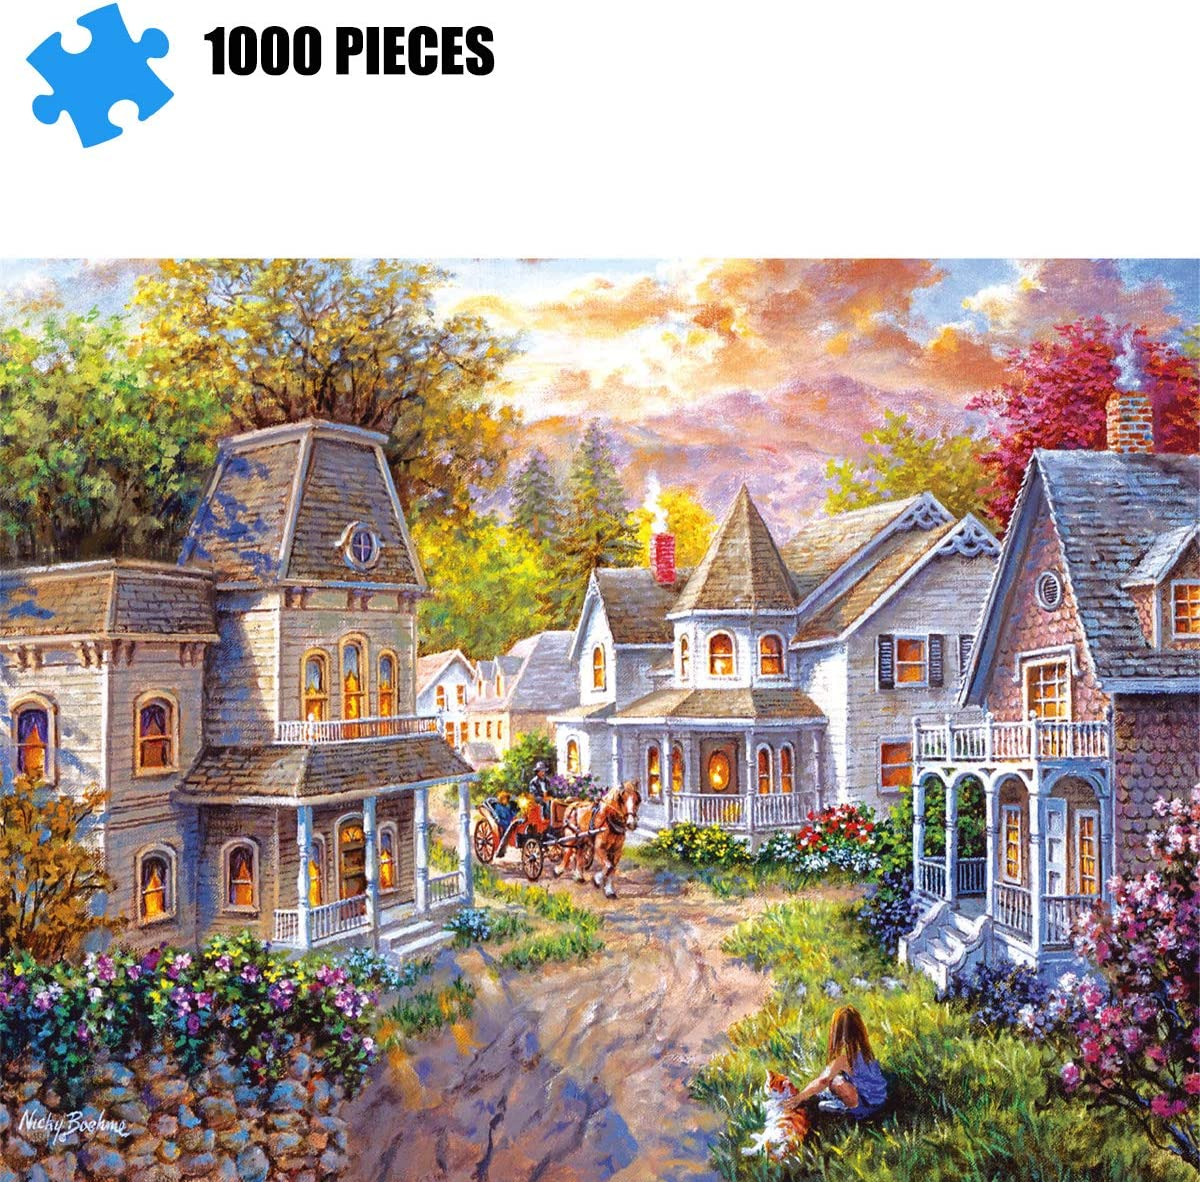 Educational Intellectual Decompressing Toy Fun Family Game for Kids Adults 820 House in The Forest Puzzles for Adults 1000 Piece Jigsaw Puzzle